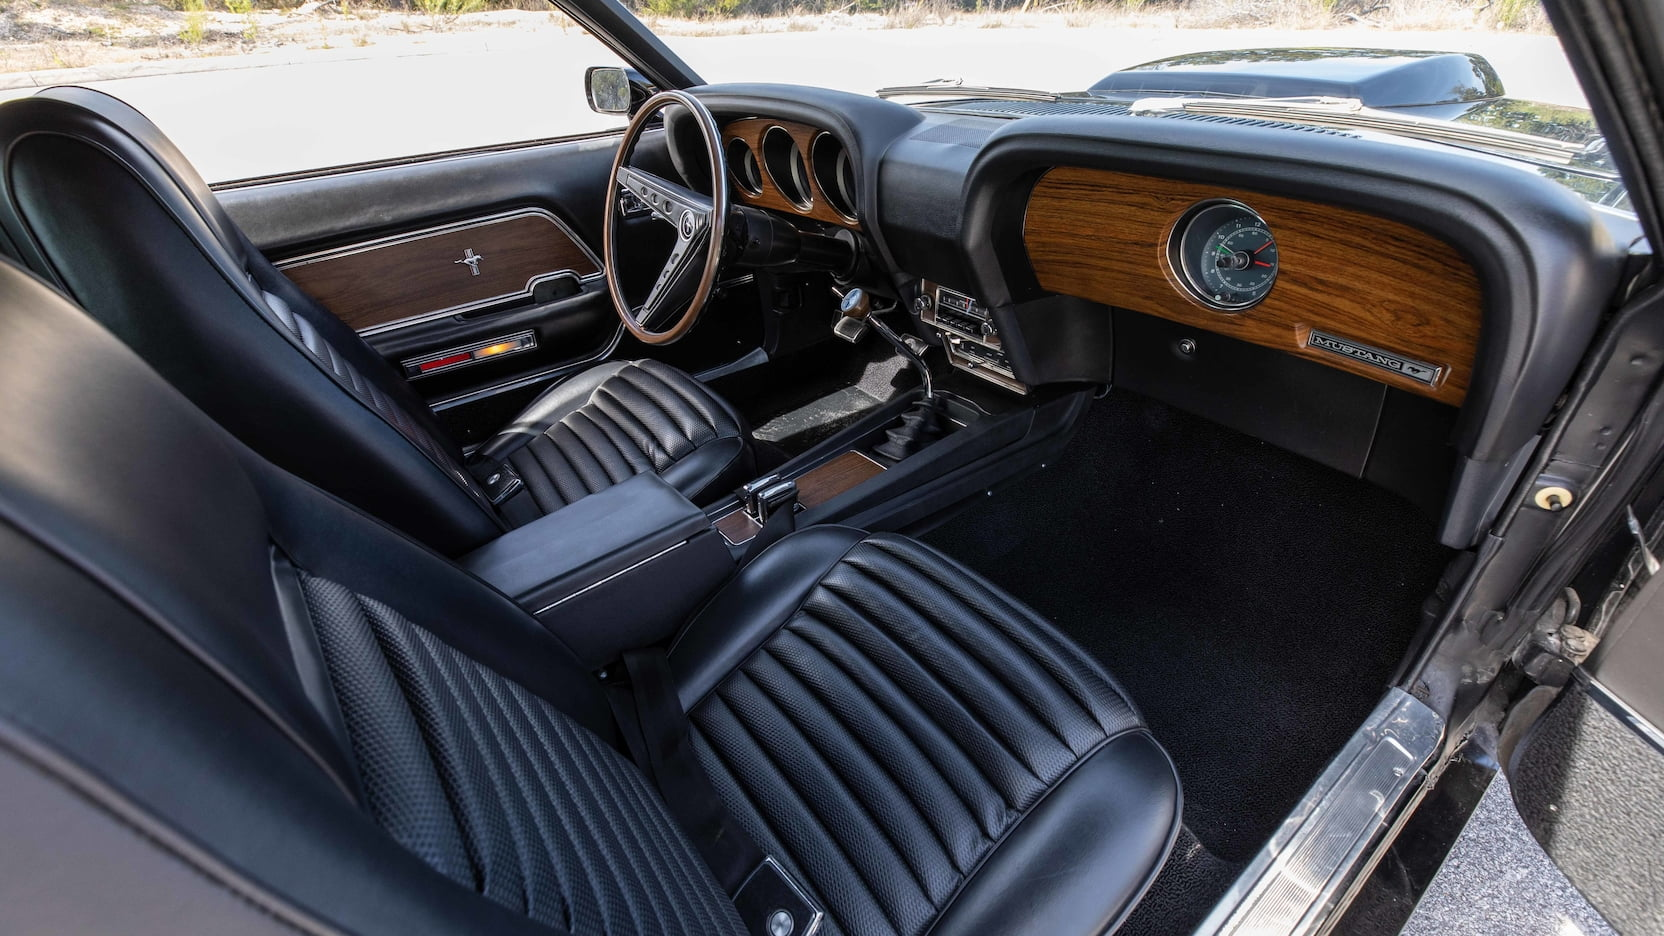 1969 Ford Mustang Boss 429 Fastback Interior Angle